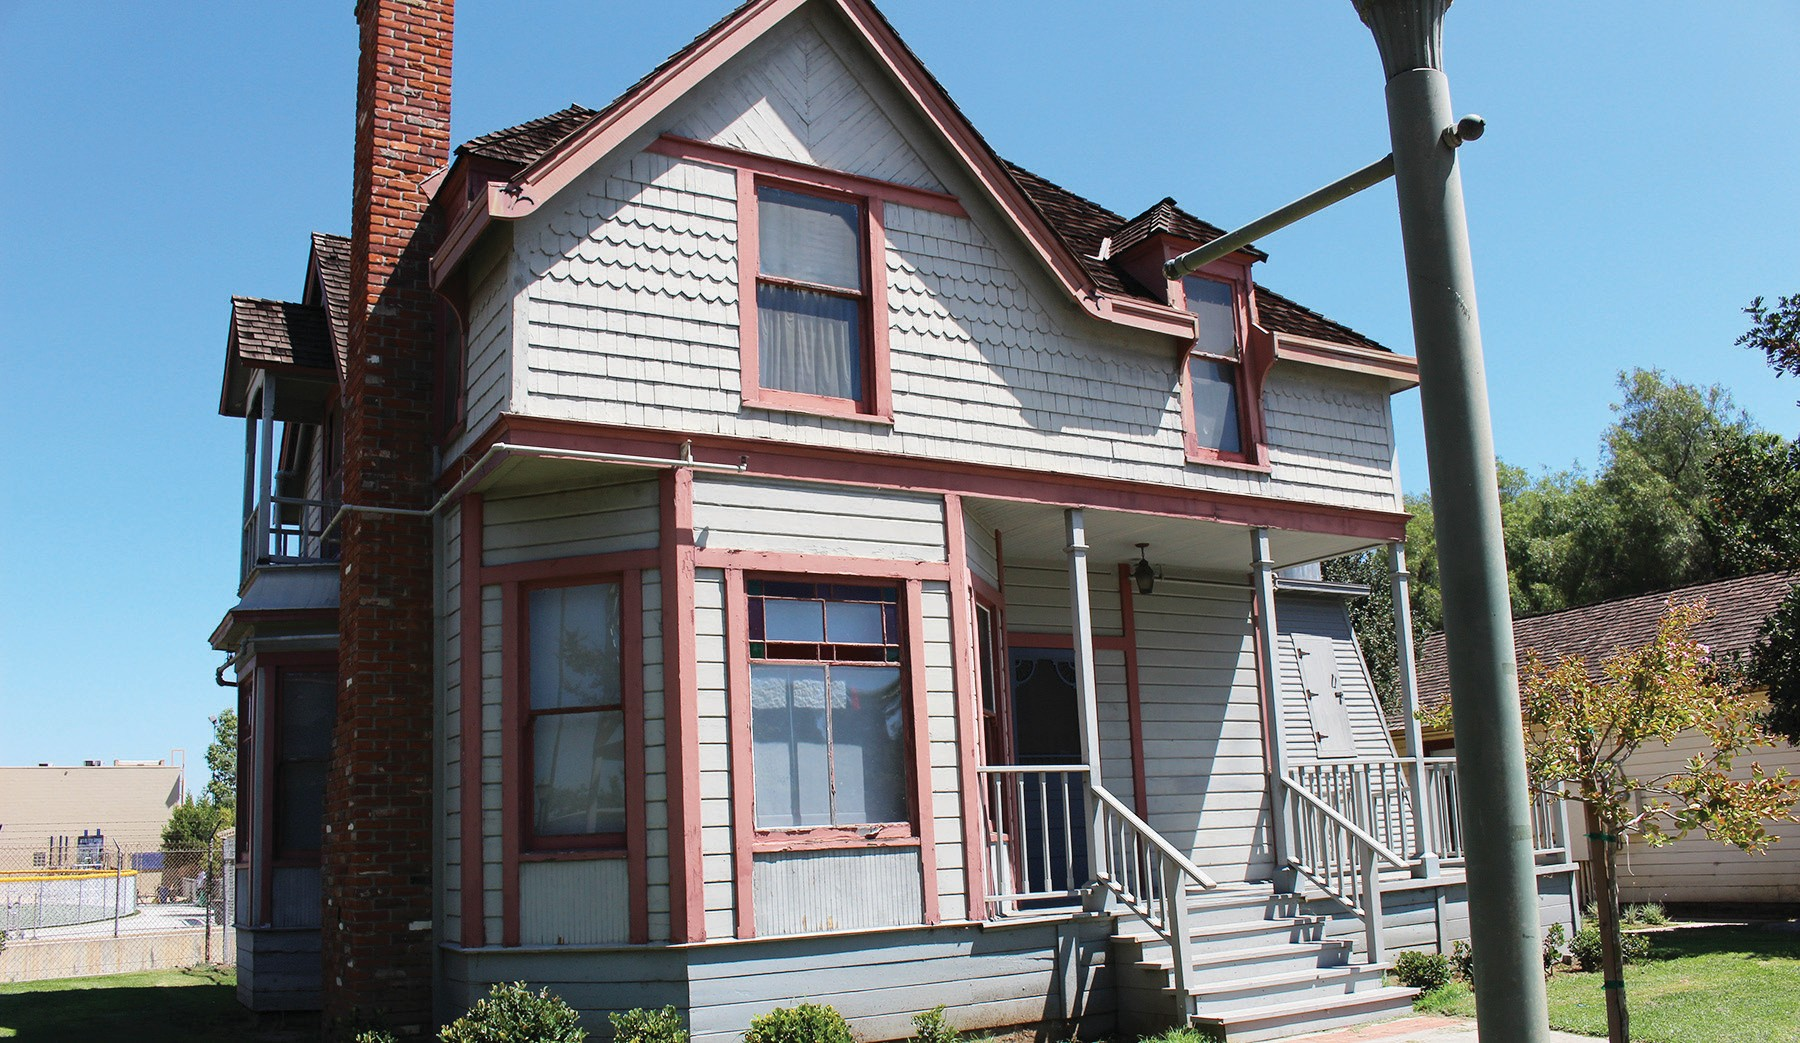 You might be tempted to think this is the home of Addam's Family, but it's actually the Victorian House at the Escondido History Center.